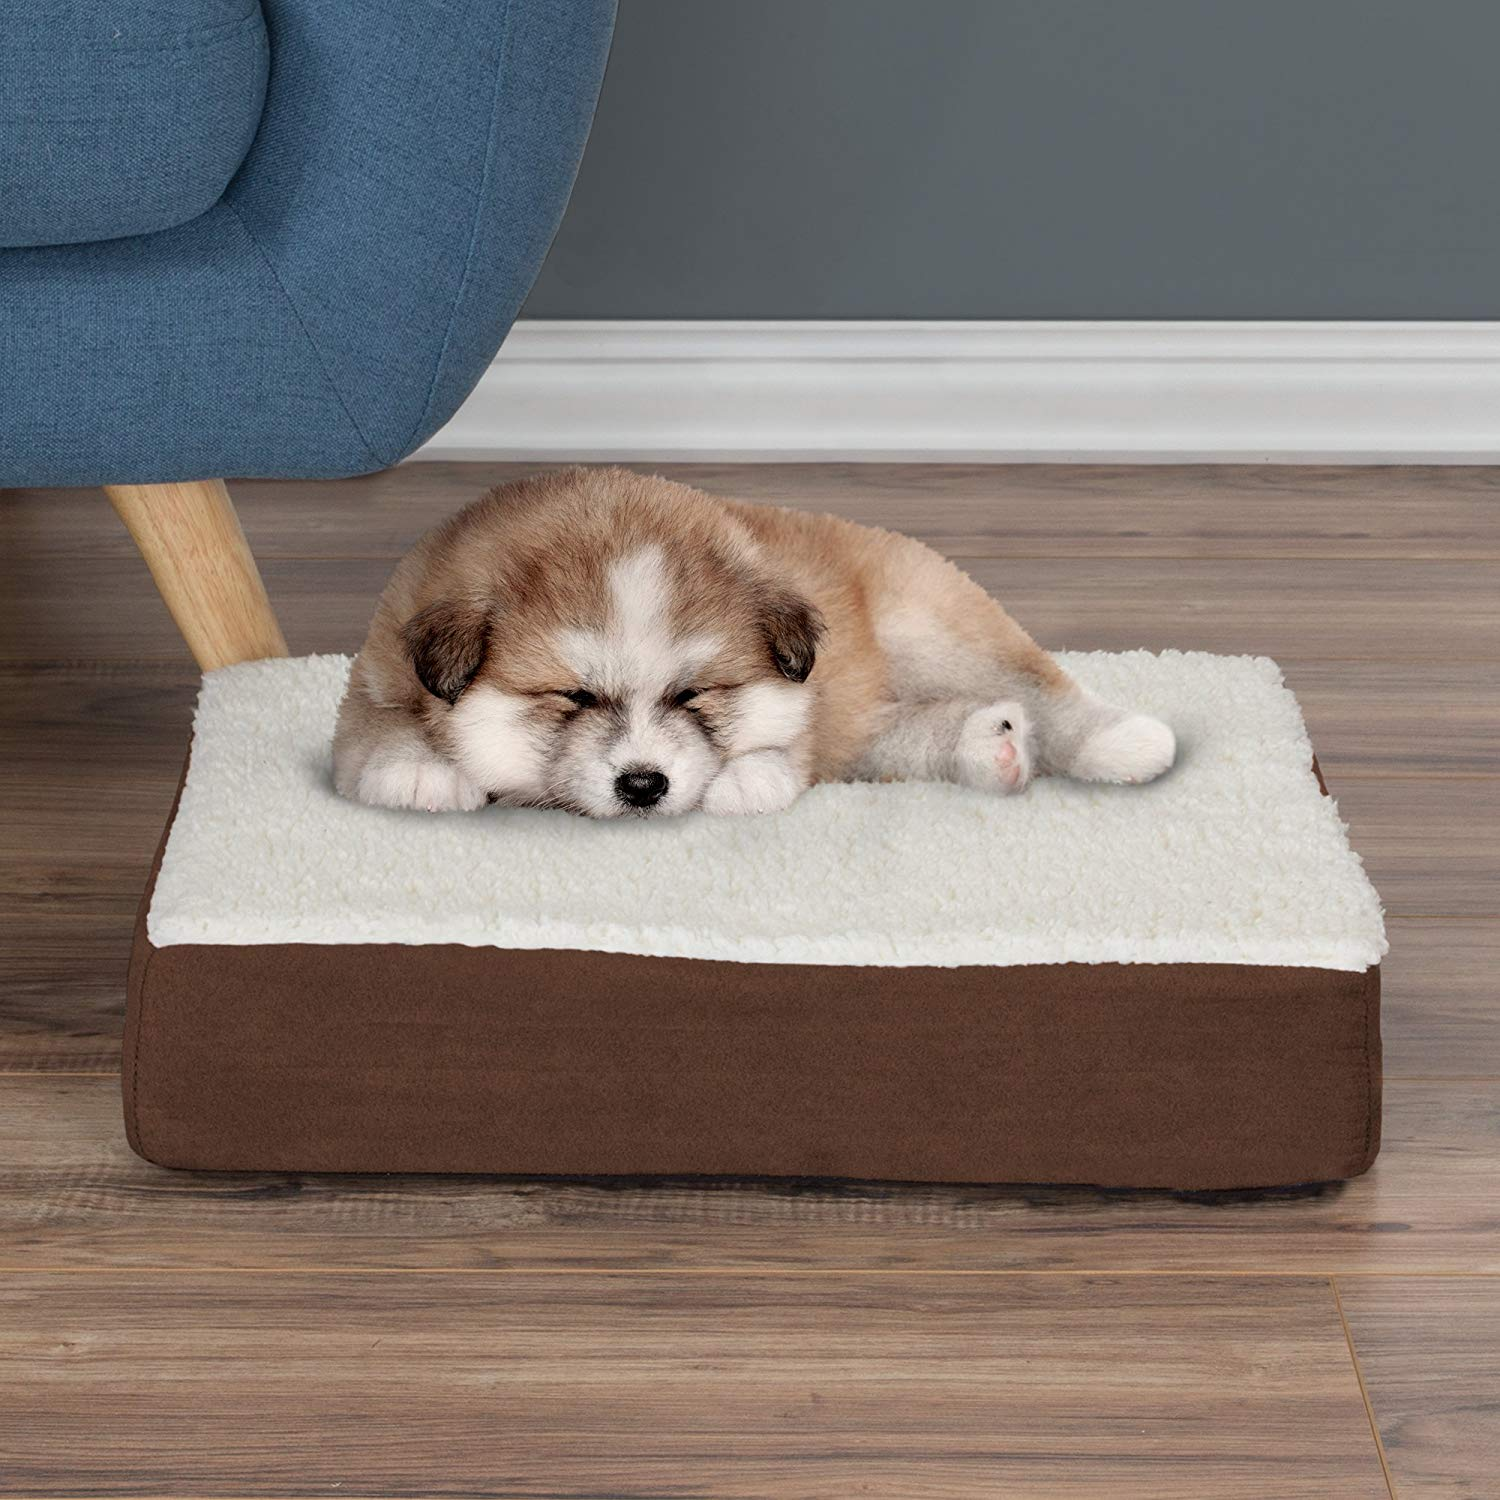 petmaker Orthopedic Sherpa Top dog Bed with Memory Foam and Removable Cover